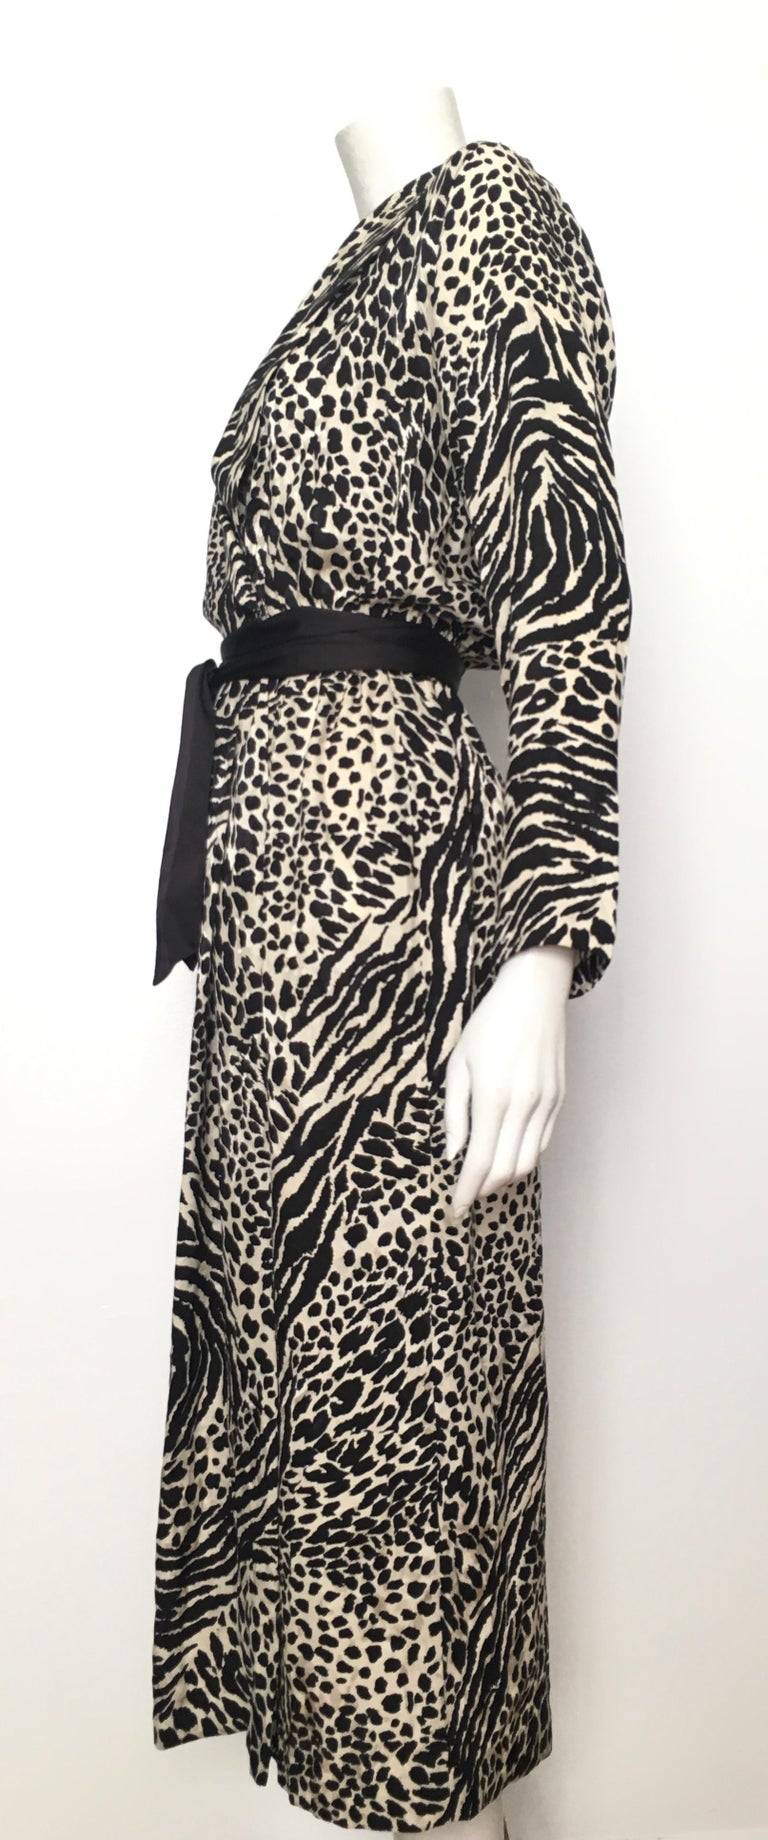 Geoffrey Beene for Lillie Rubin 1980 Animal Print Silk Dress Size 6. For Sale 8